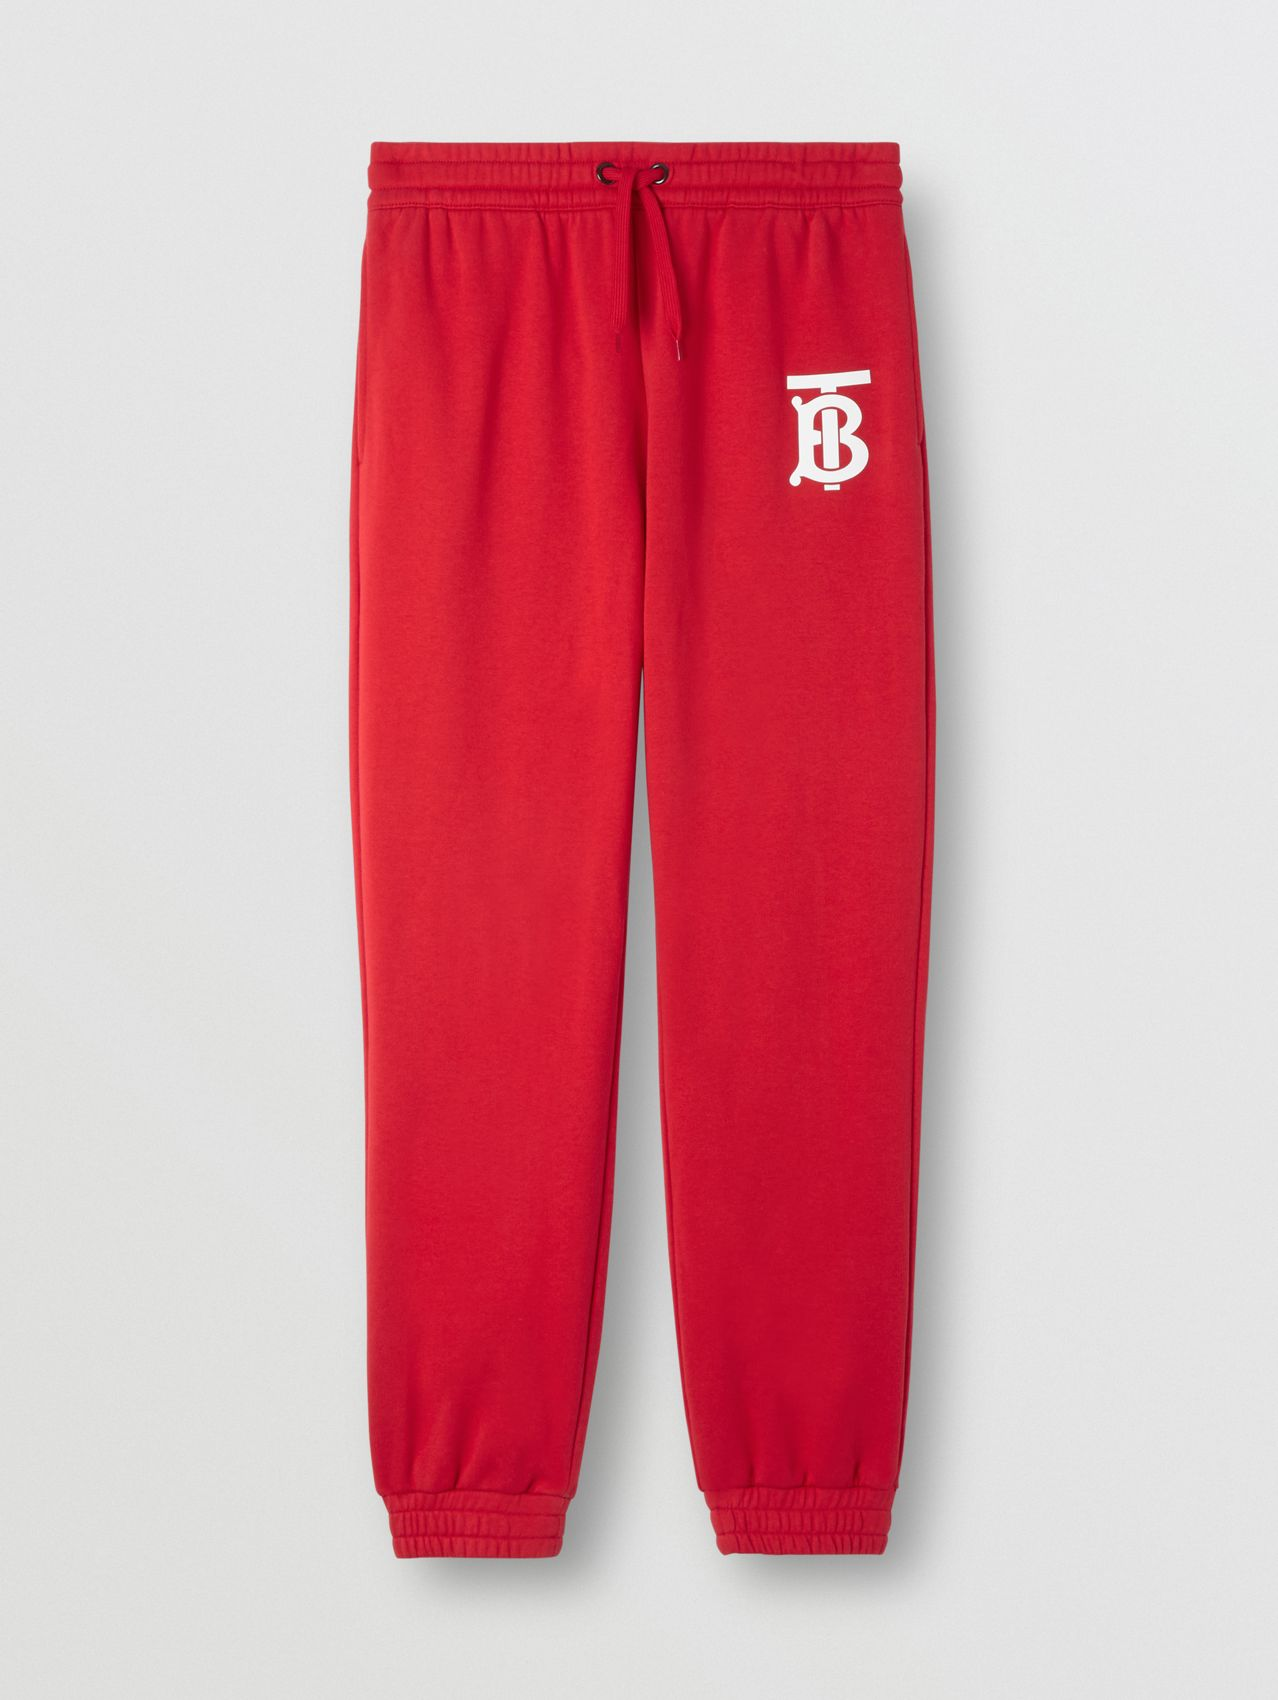 Monogram Motif Cotton Jogging Pants in Bright Red